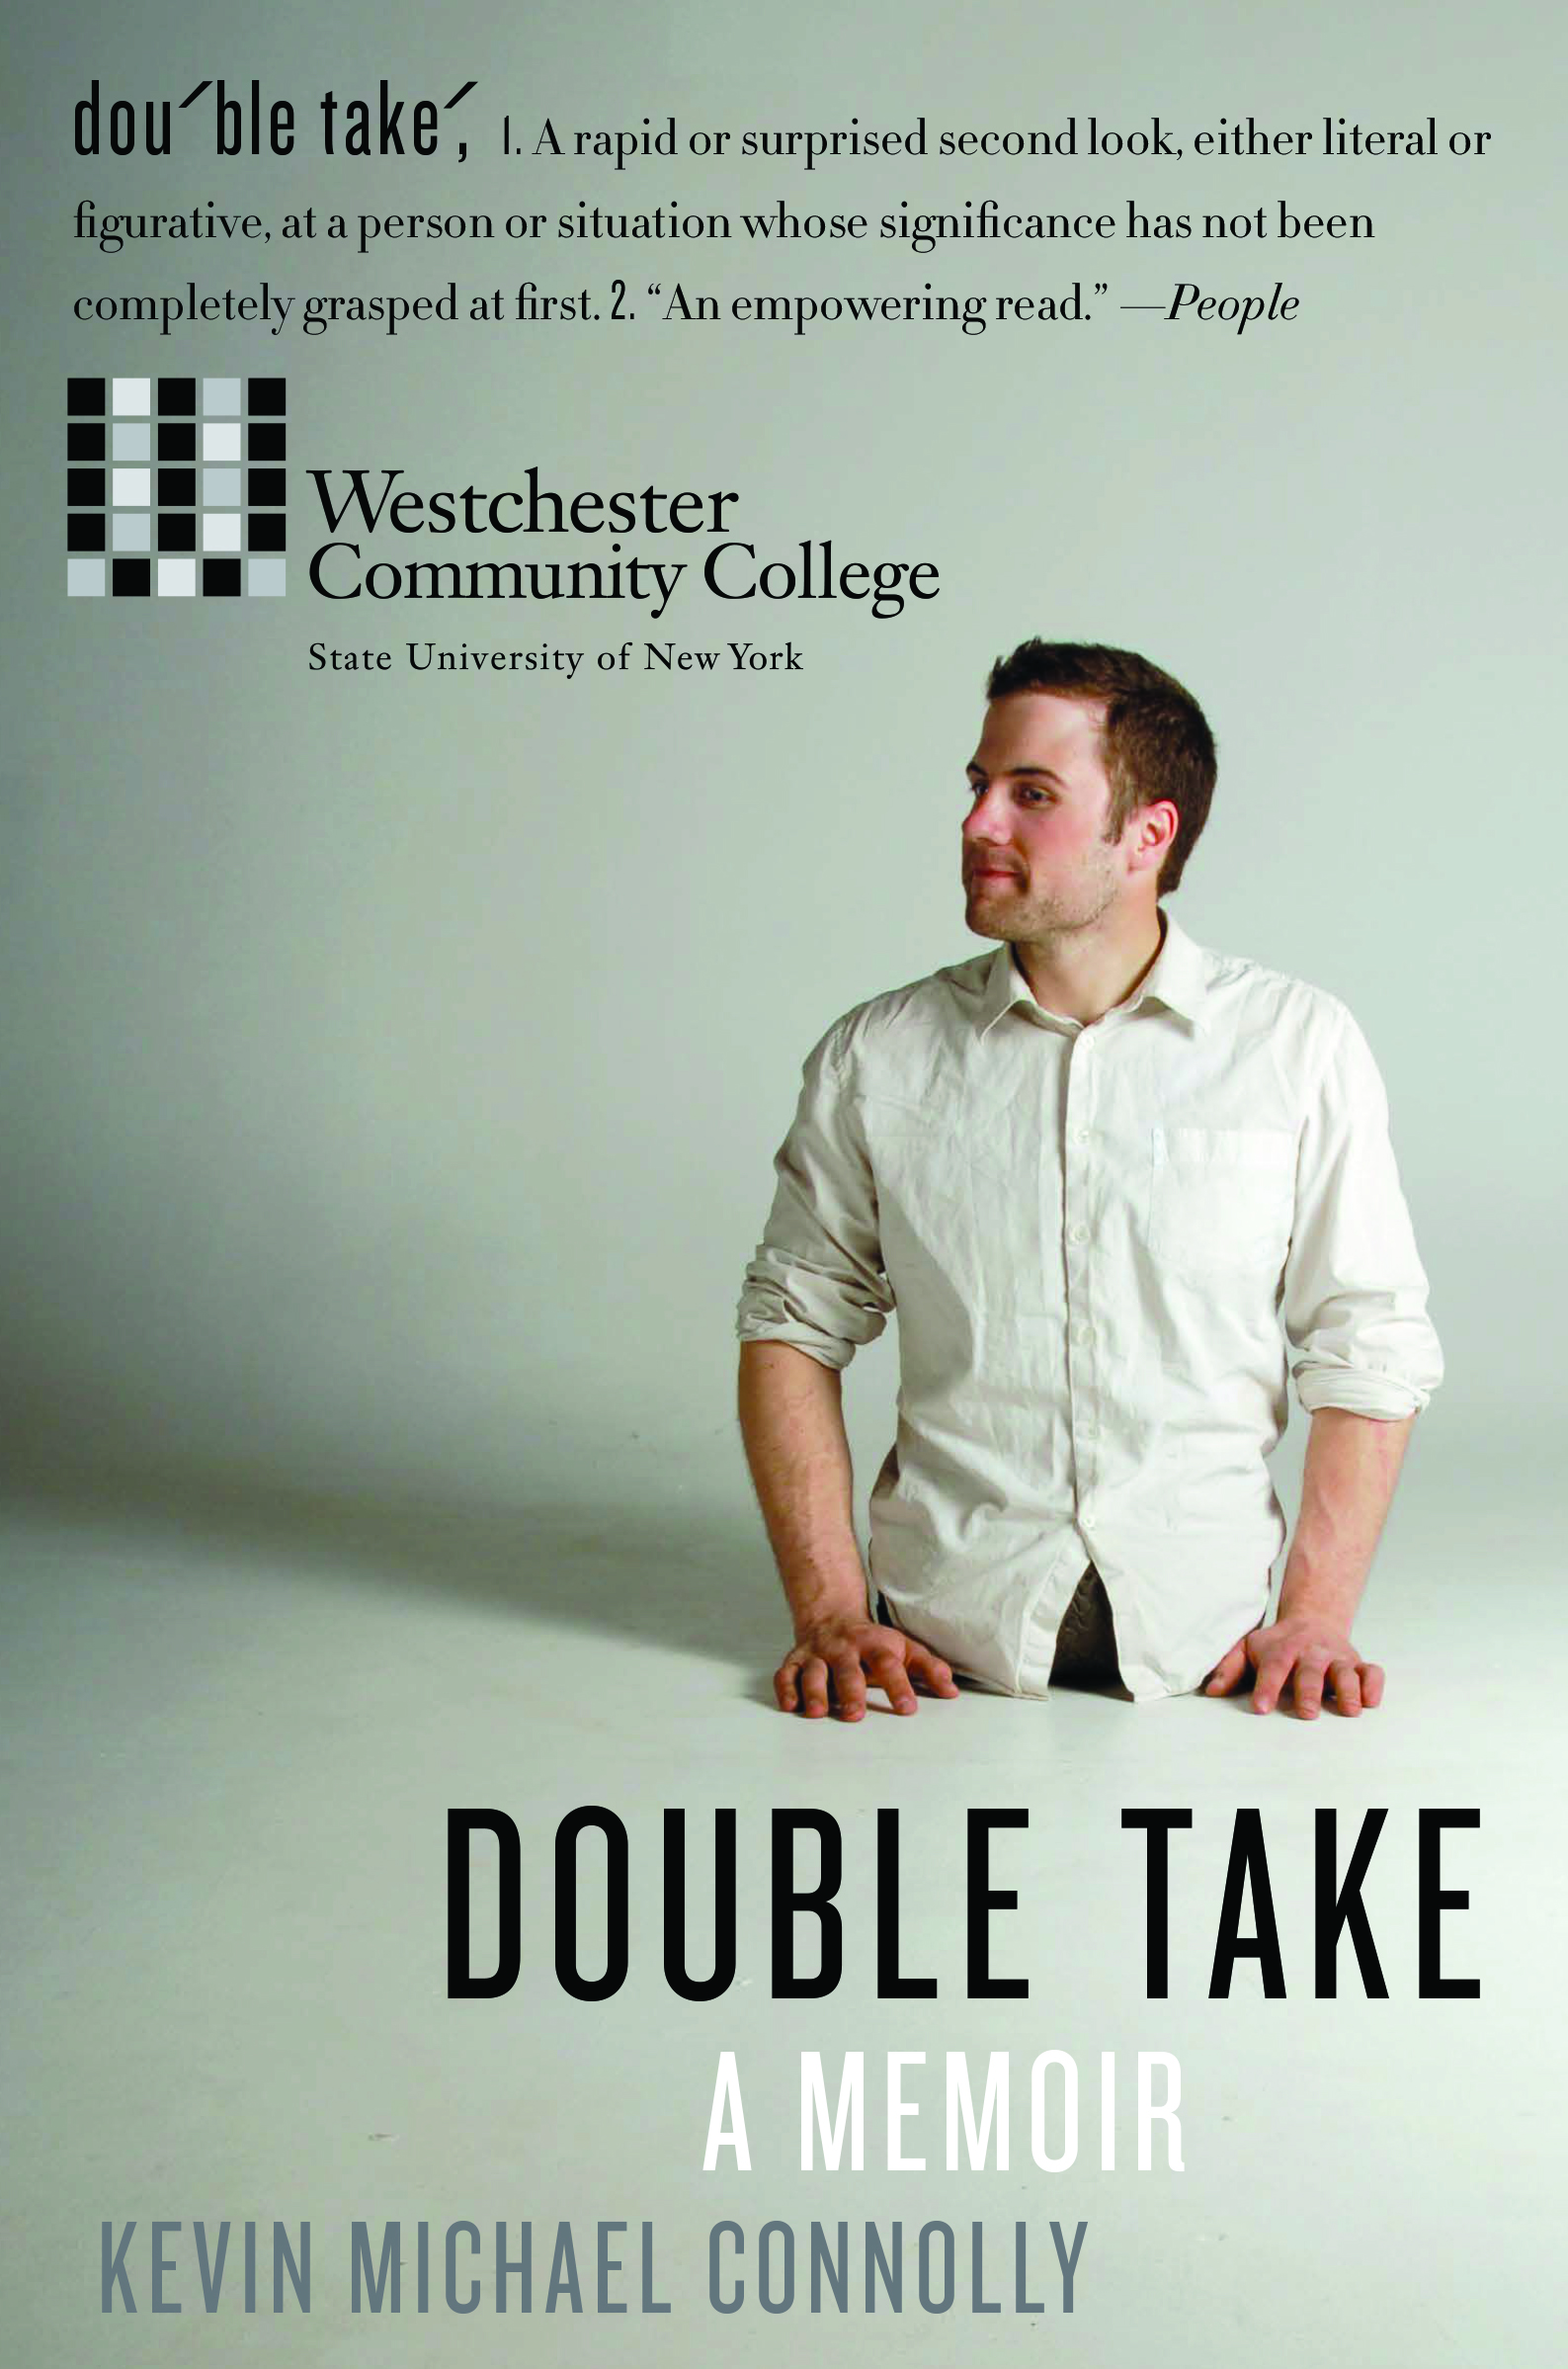 Book Jacket for Double Take; A Memoir by Kevin Michael Connolly